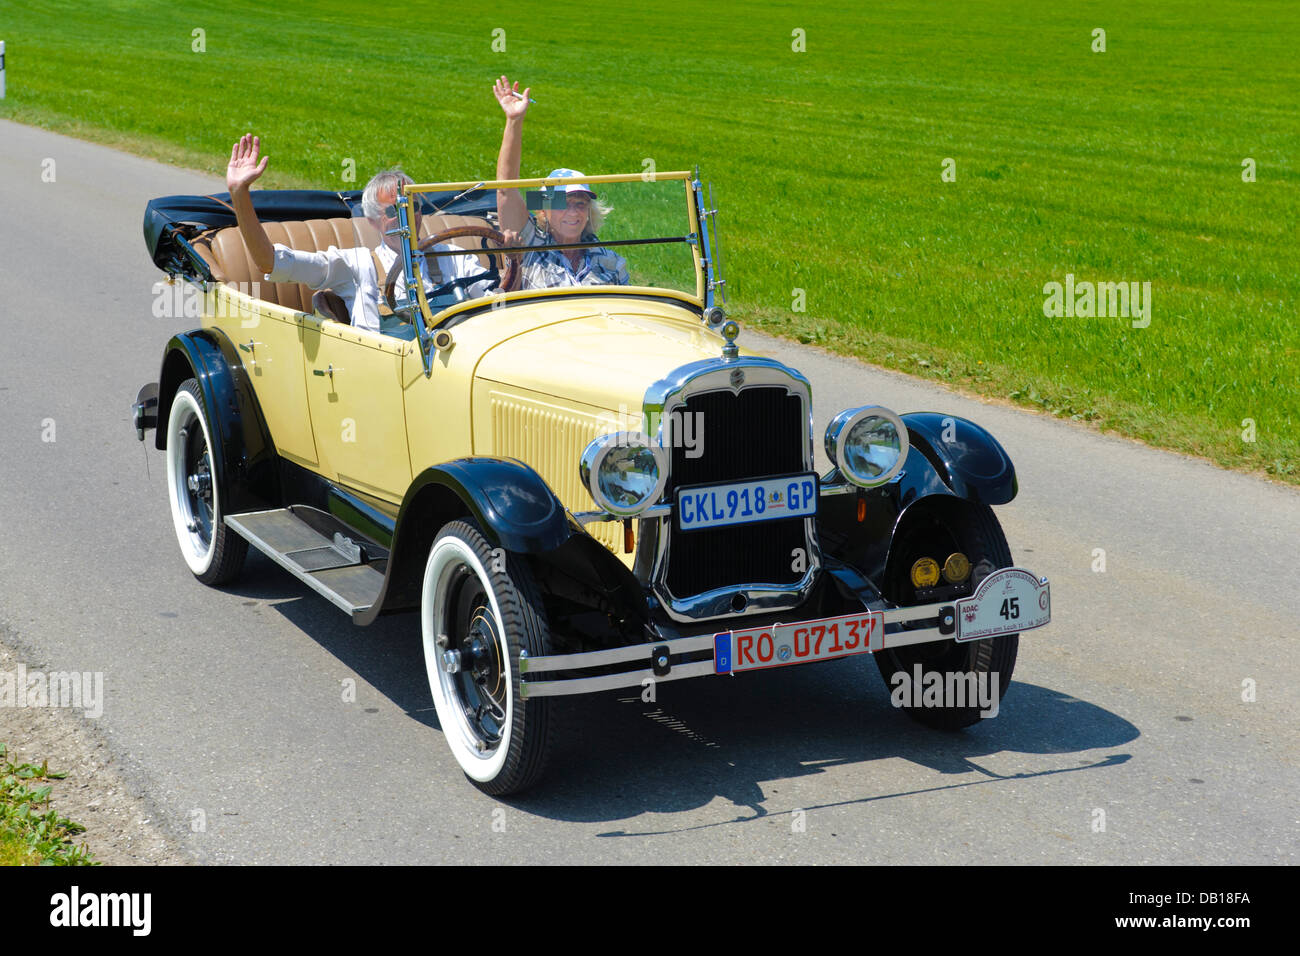 Oldsmobile, built at year 1924, photo taken on July 12, 2013 in Landsberg, Germany - Stock Image